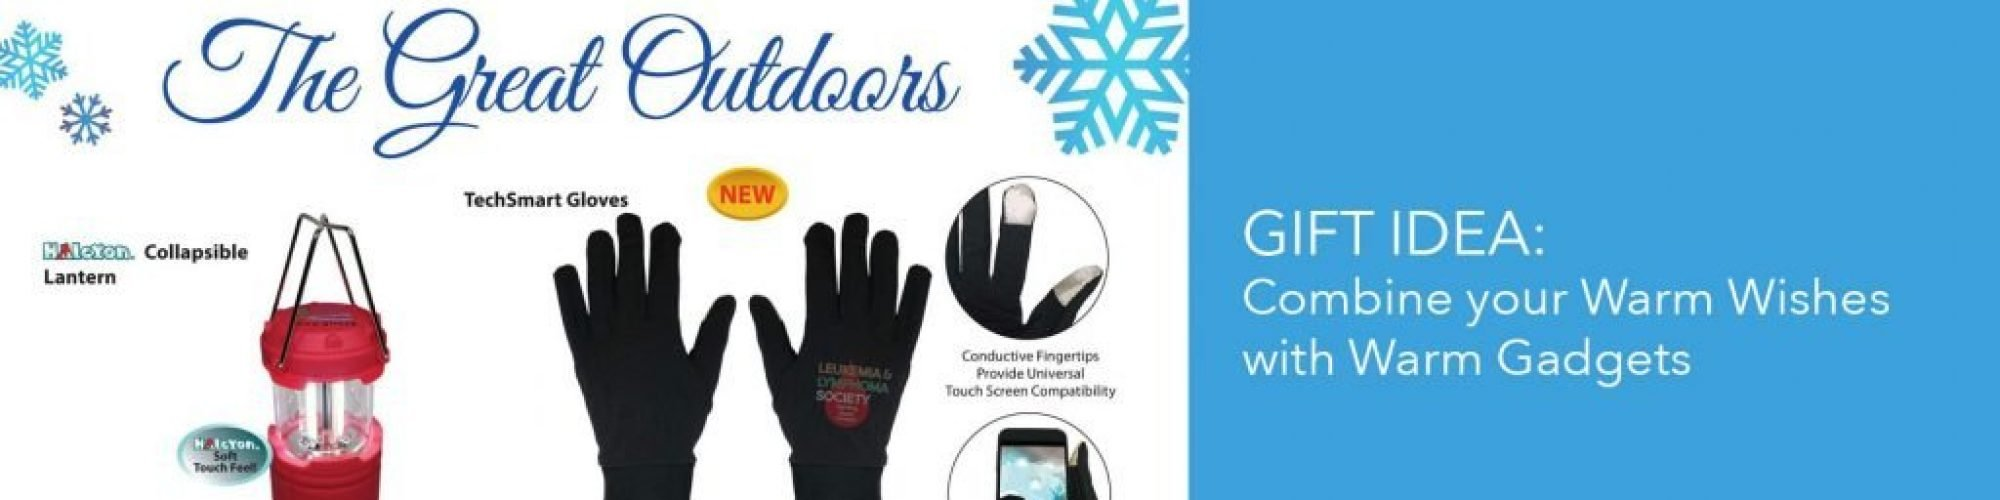 Corporate Holiday Gifts - Gloves